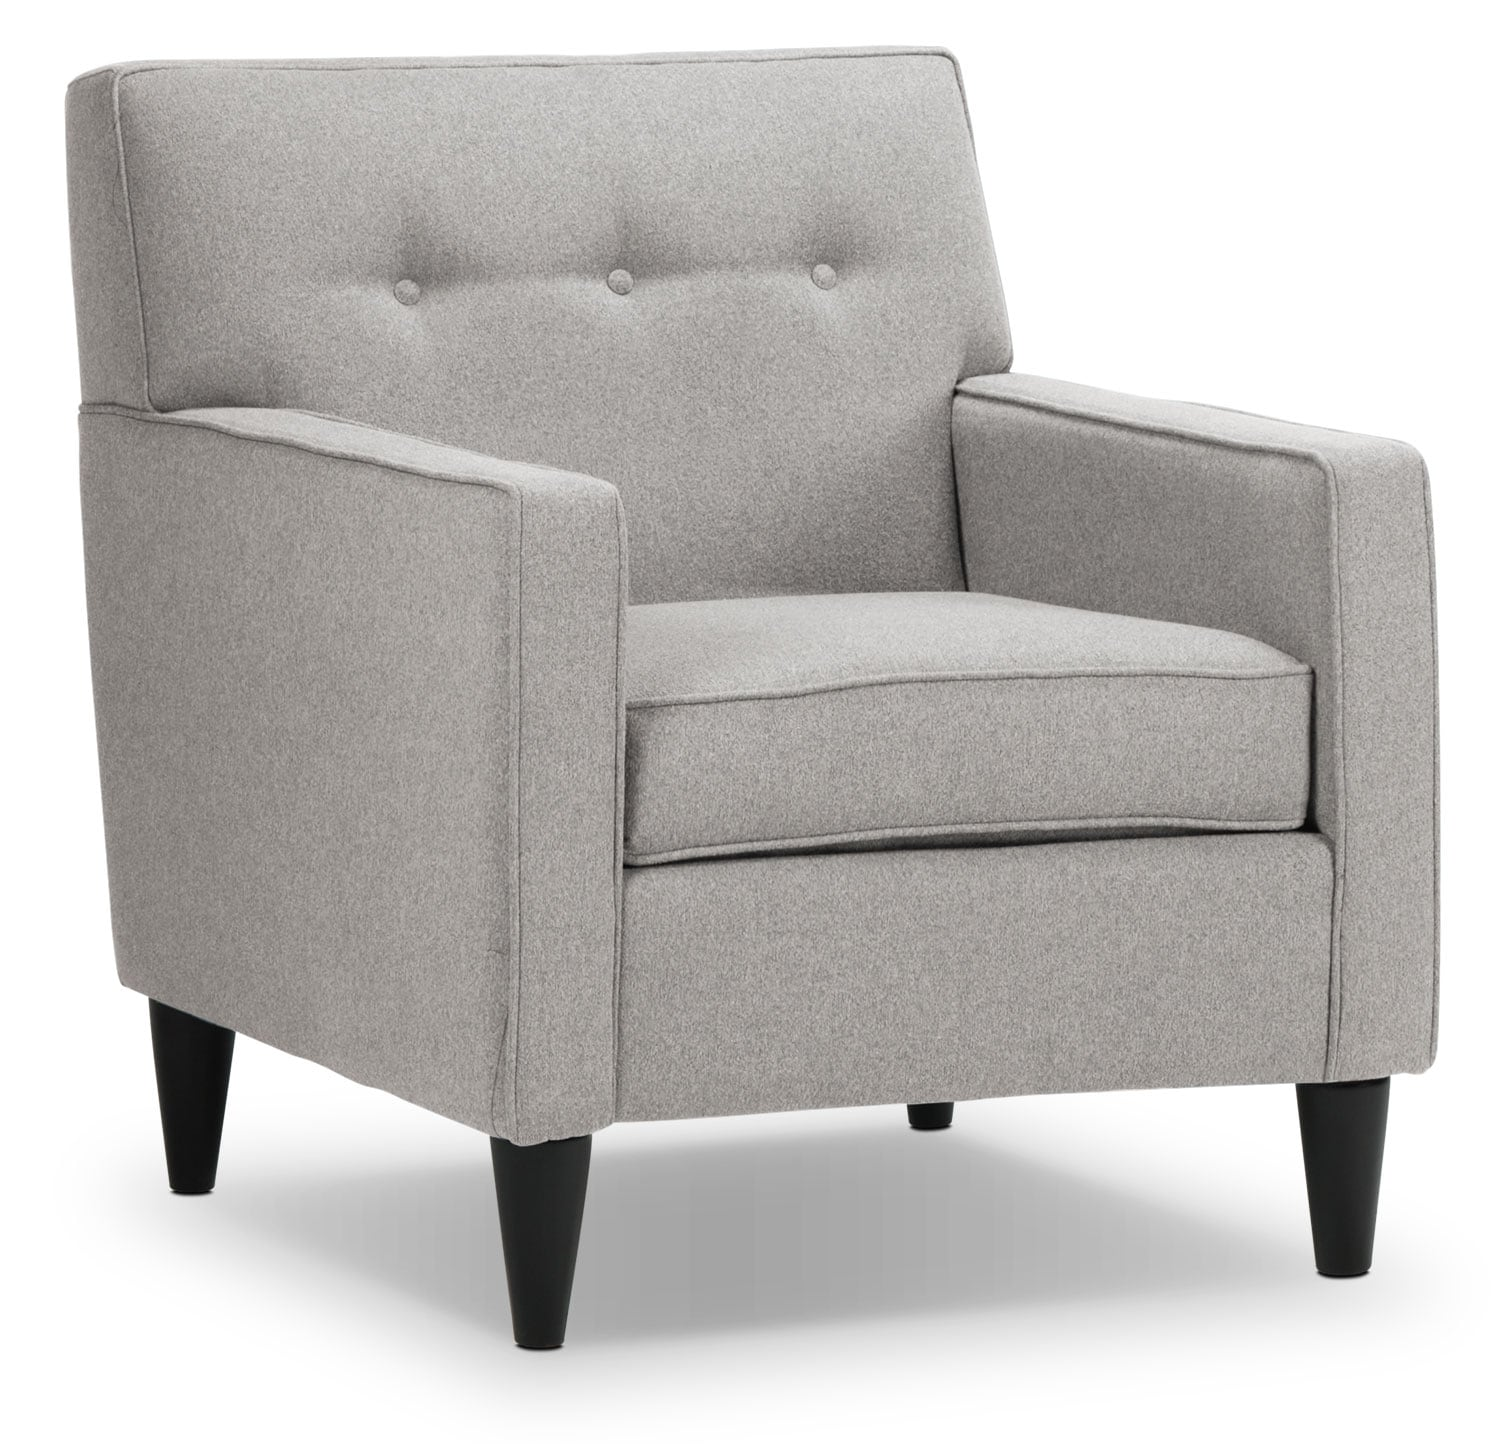 Living Room Furniture - Passerina Chair - Dove